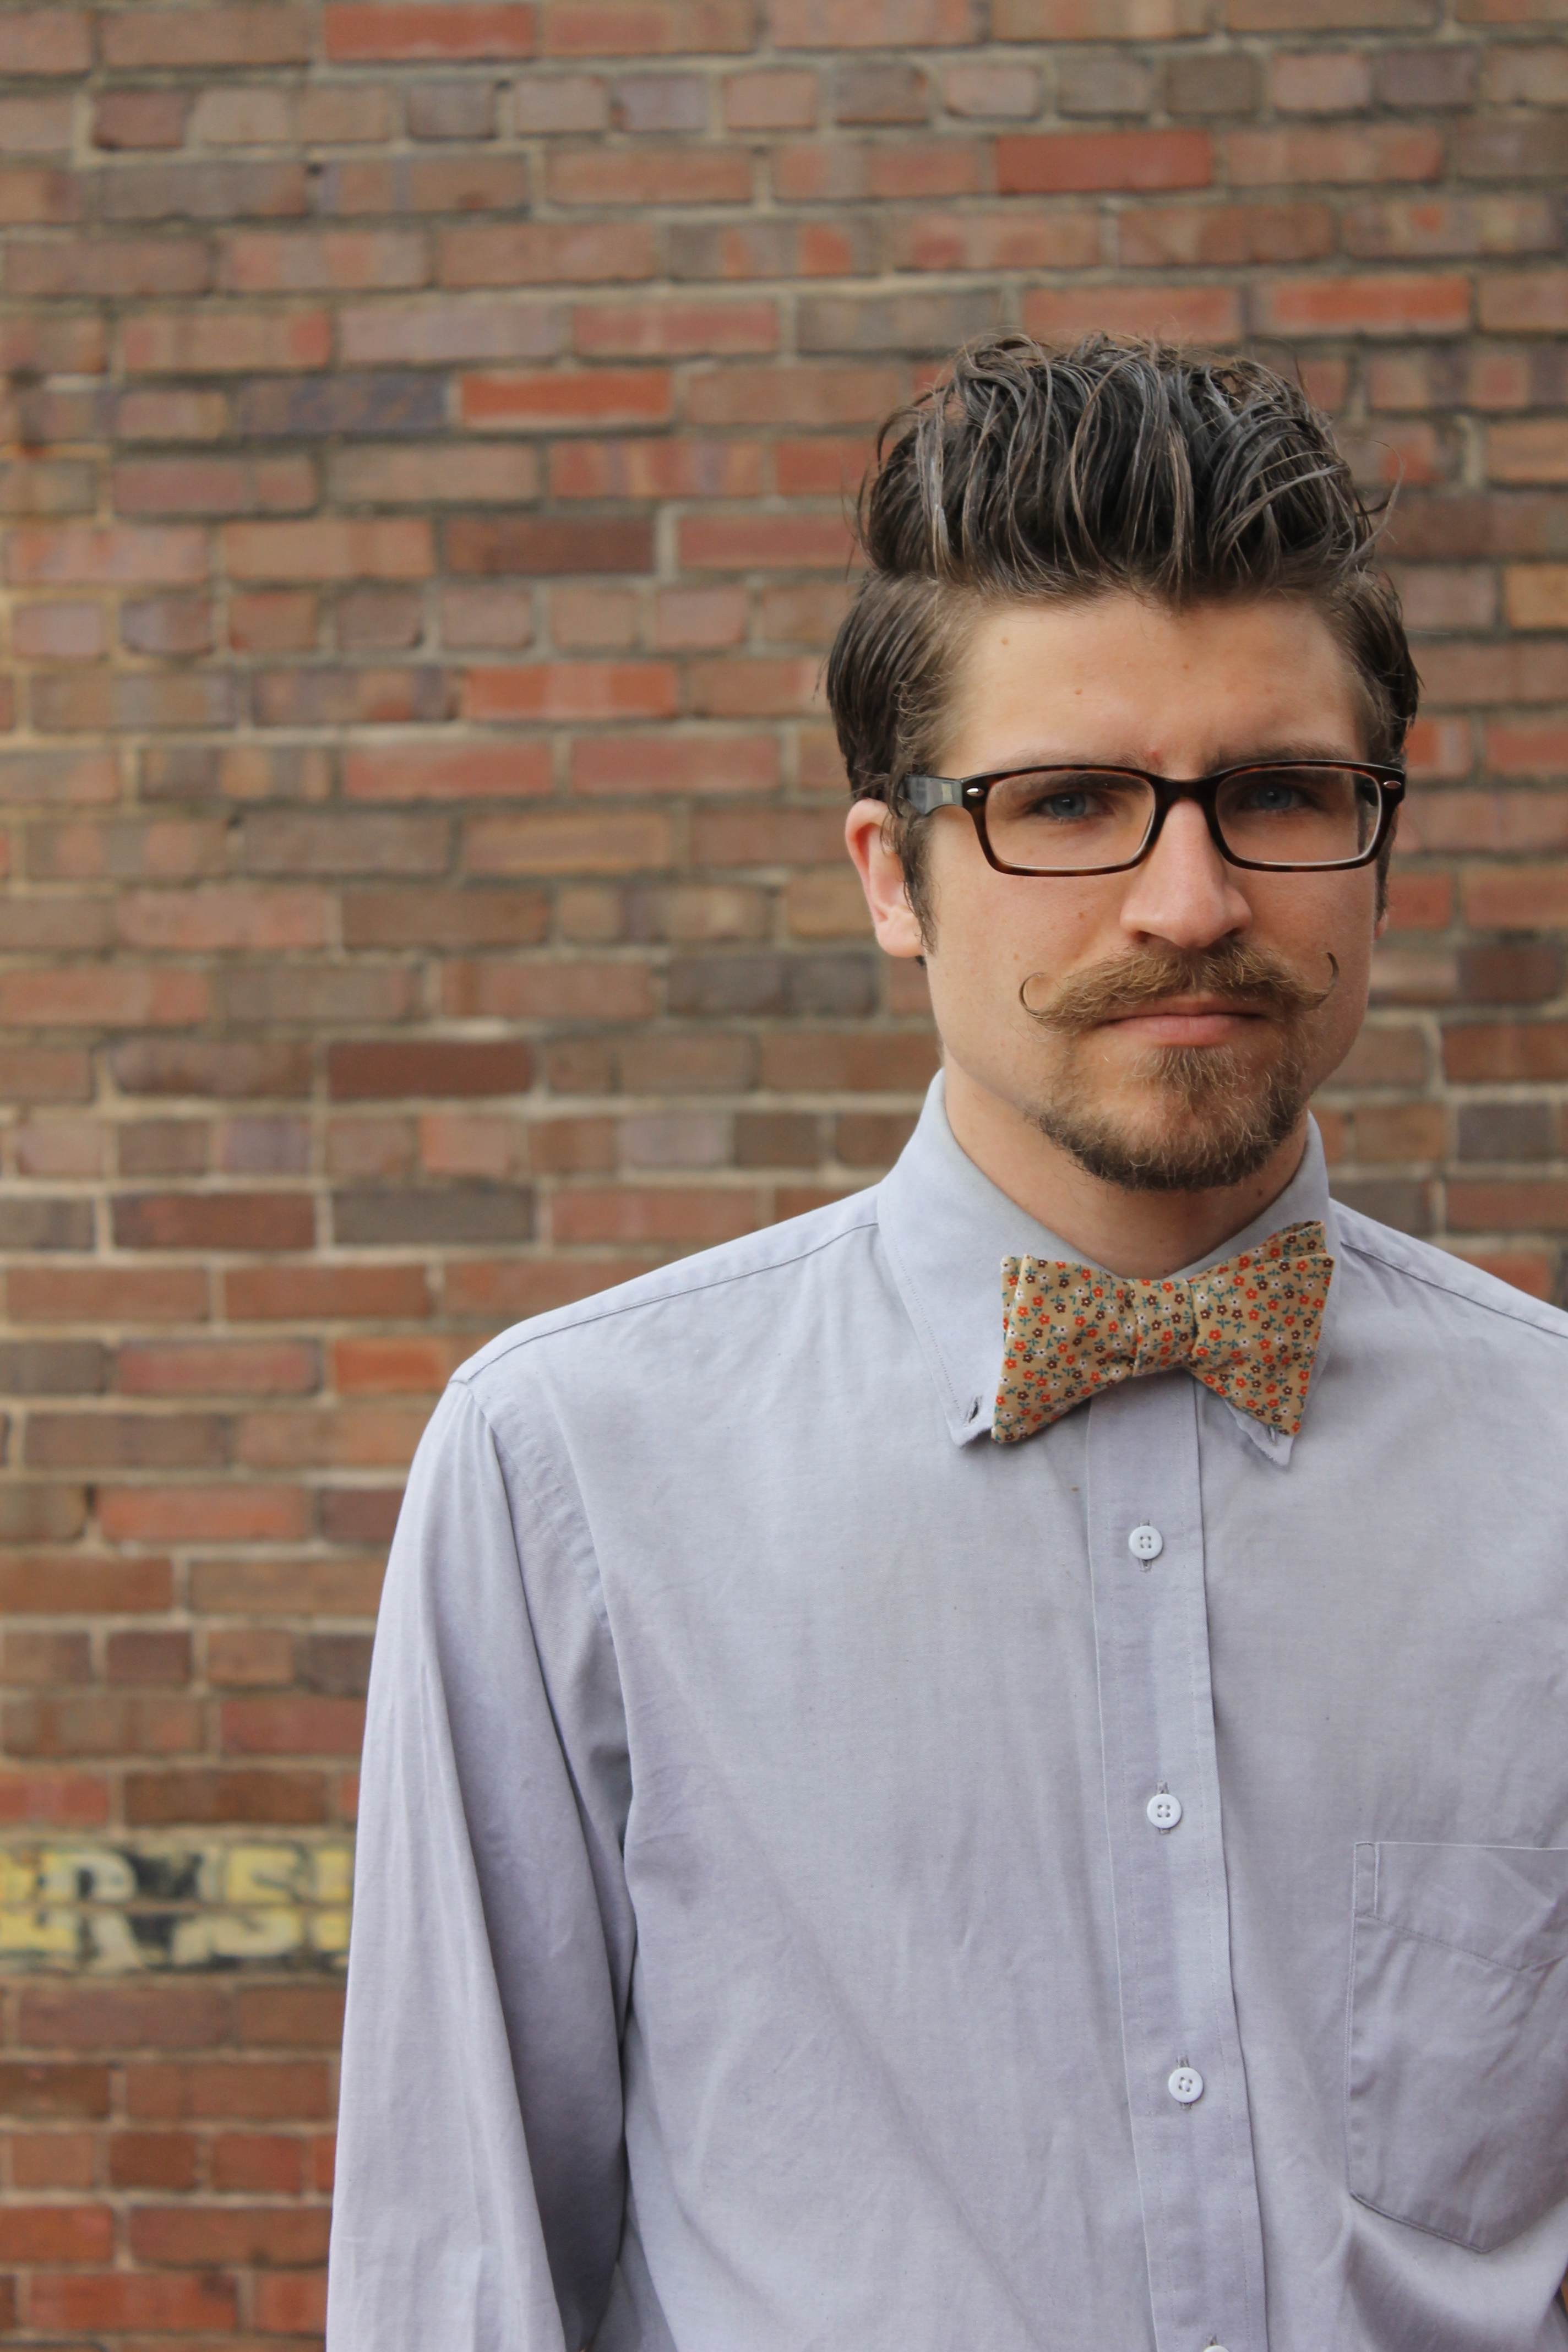 Pomp & Circumstance Bow Ties FW 2015